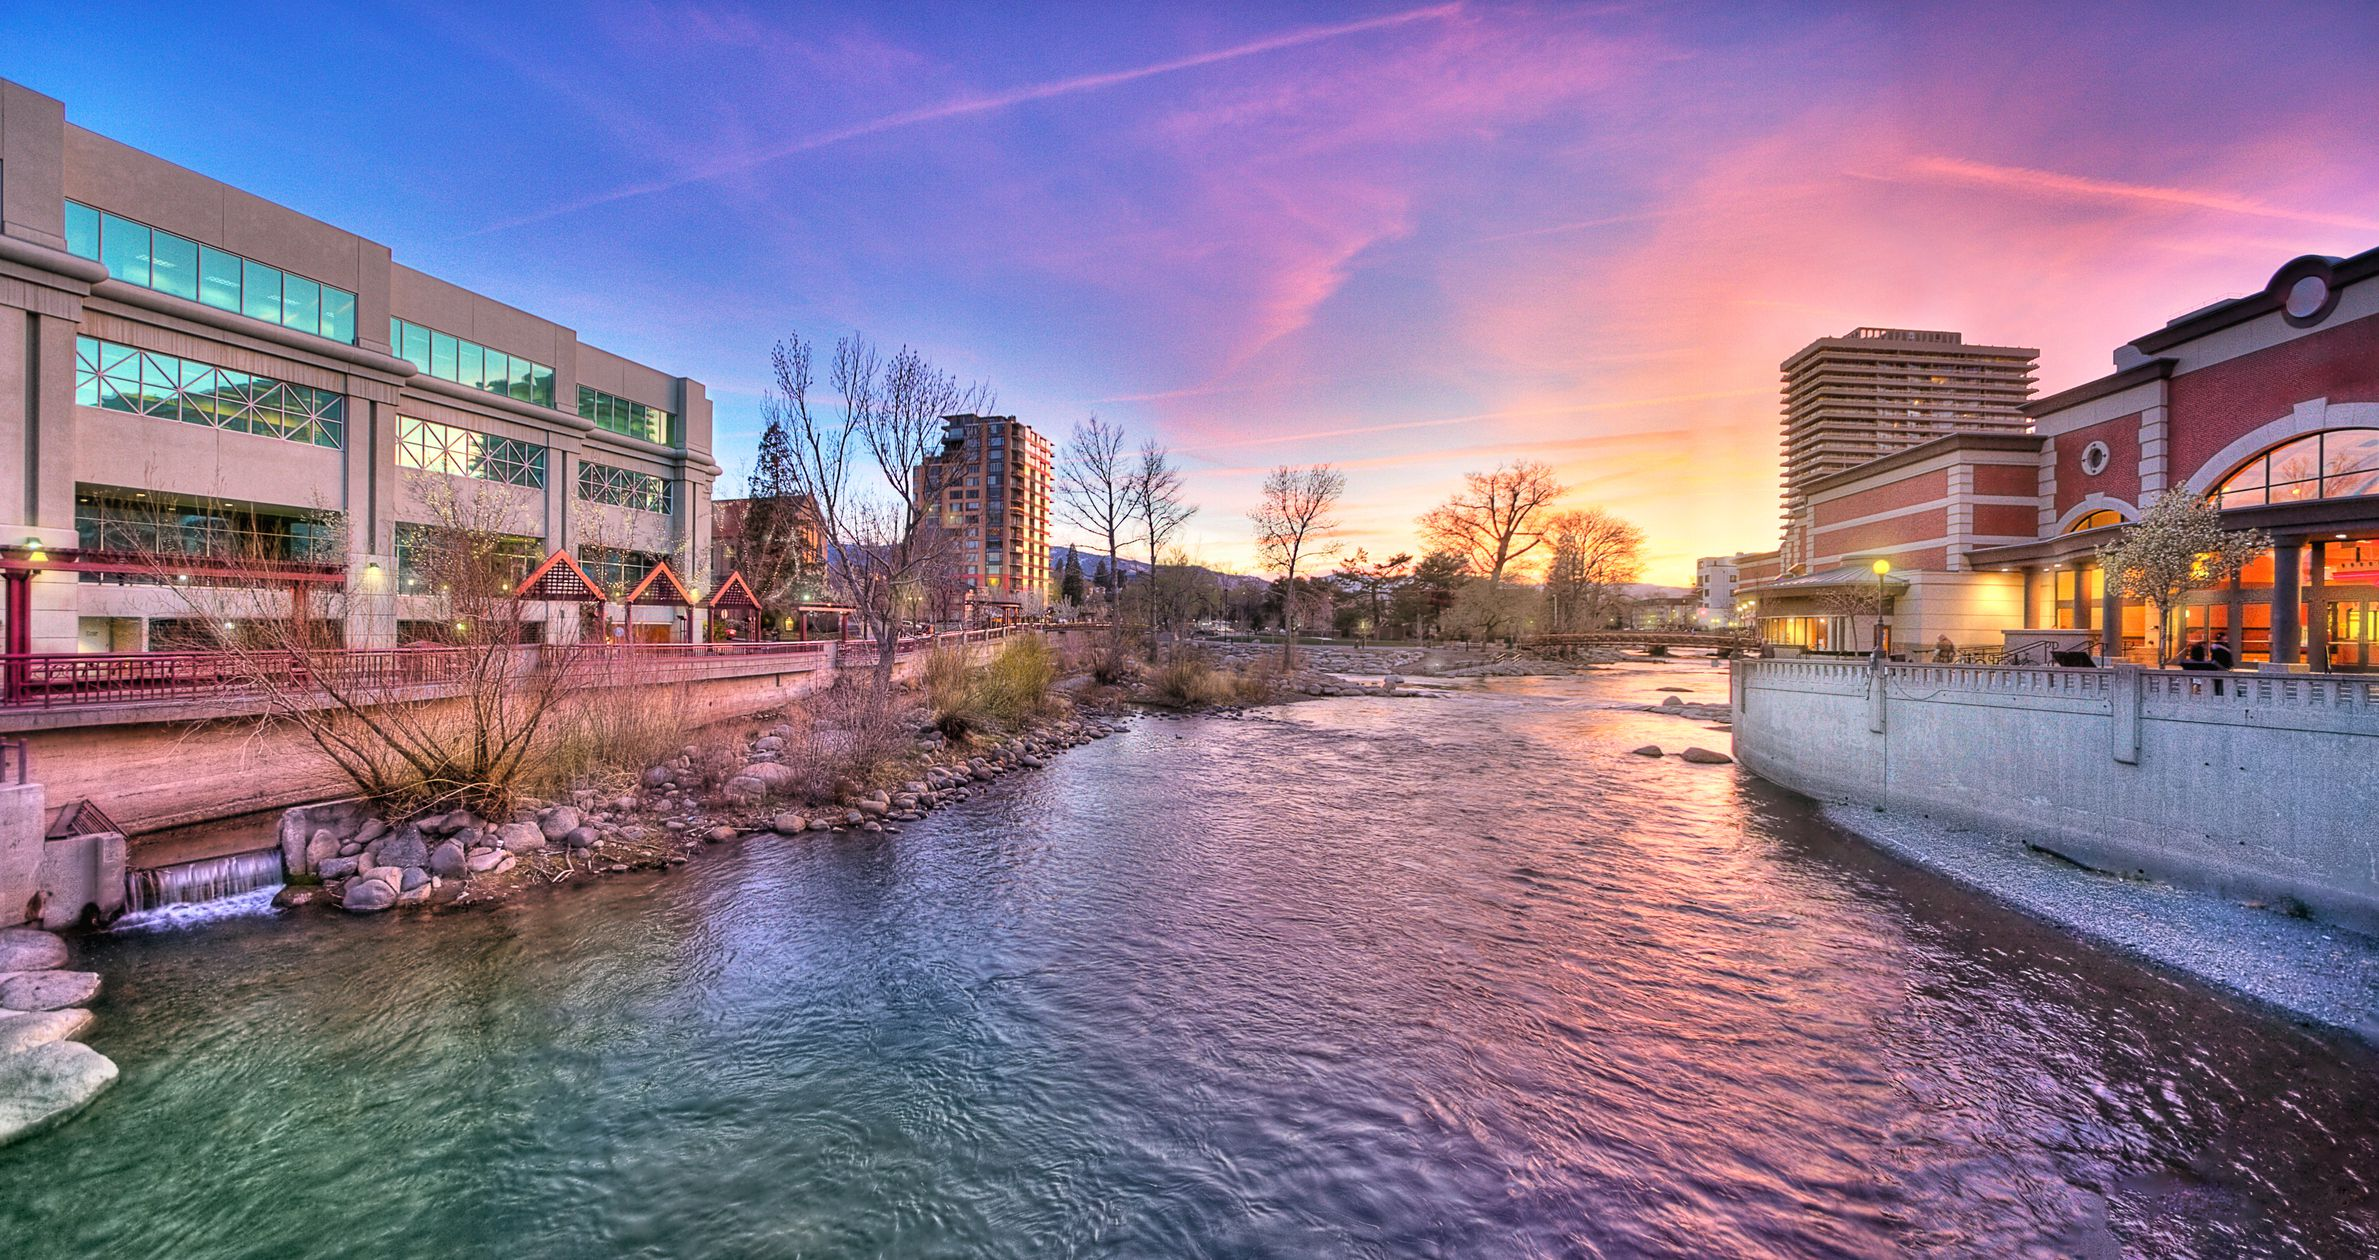 The Coolest Things To See In Reno Nevada